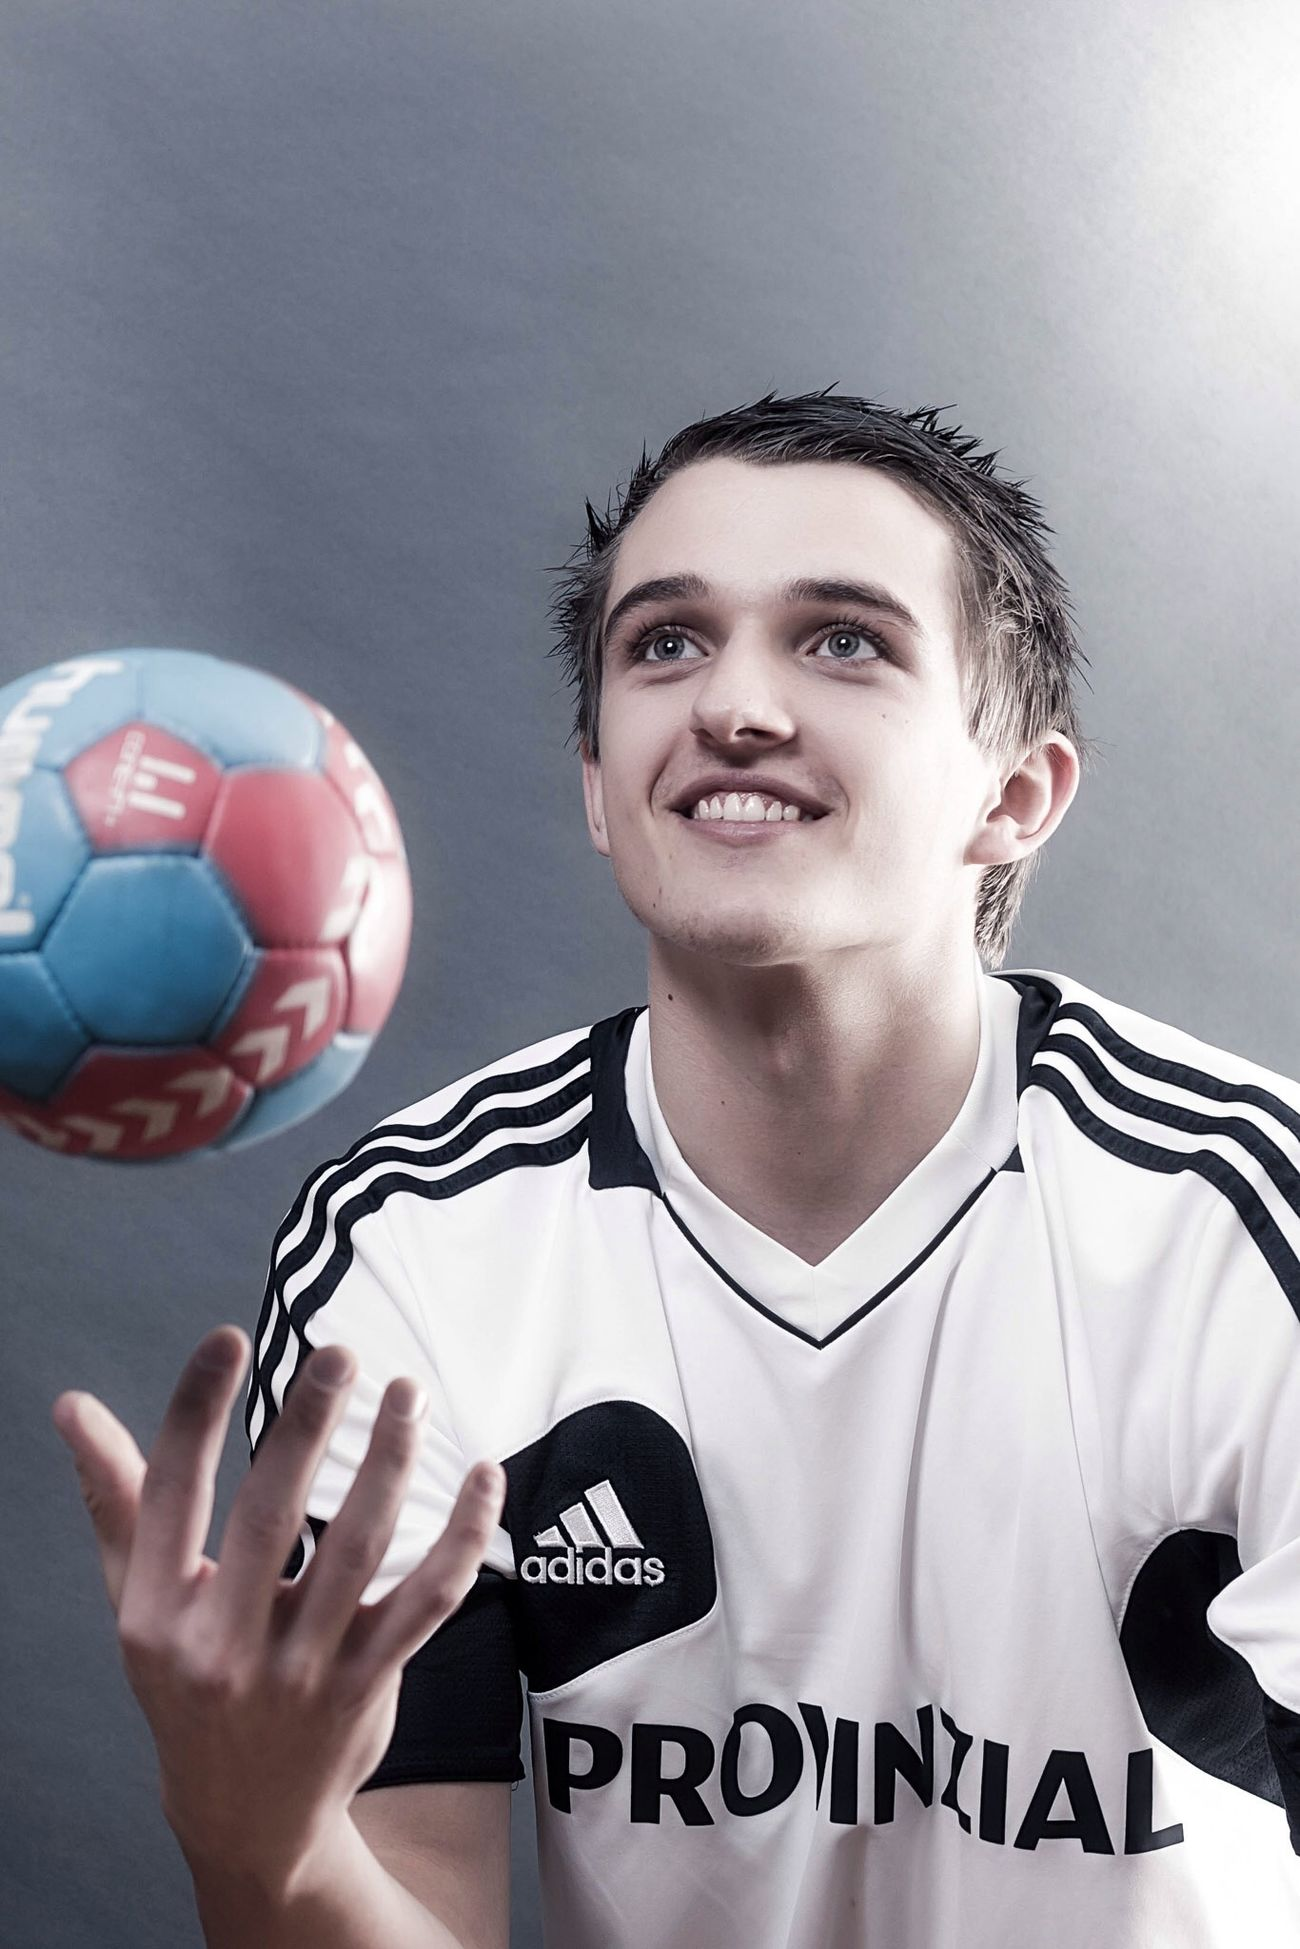 THW Kiel Handball Portrait Studio Goalkeeper